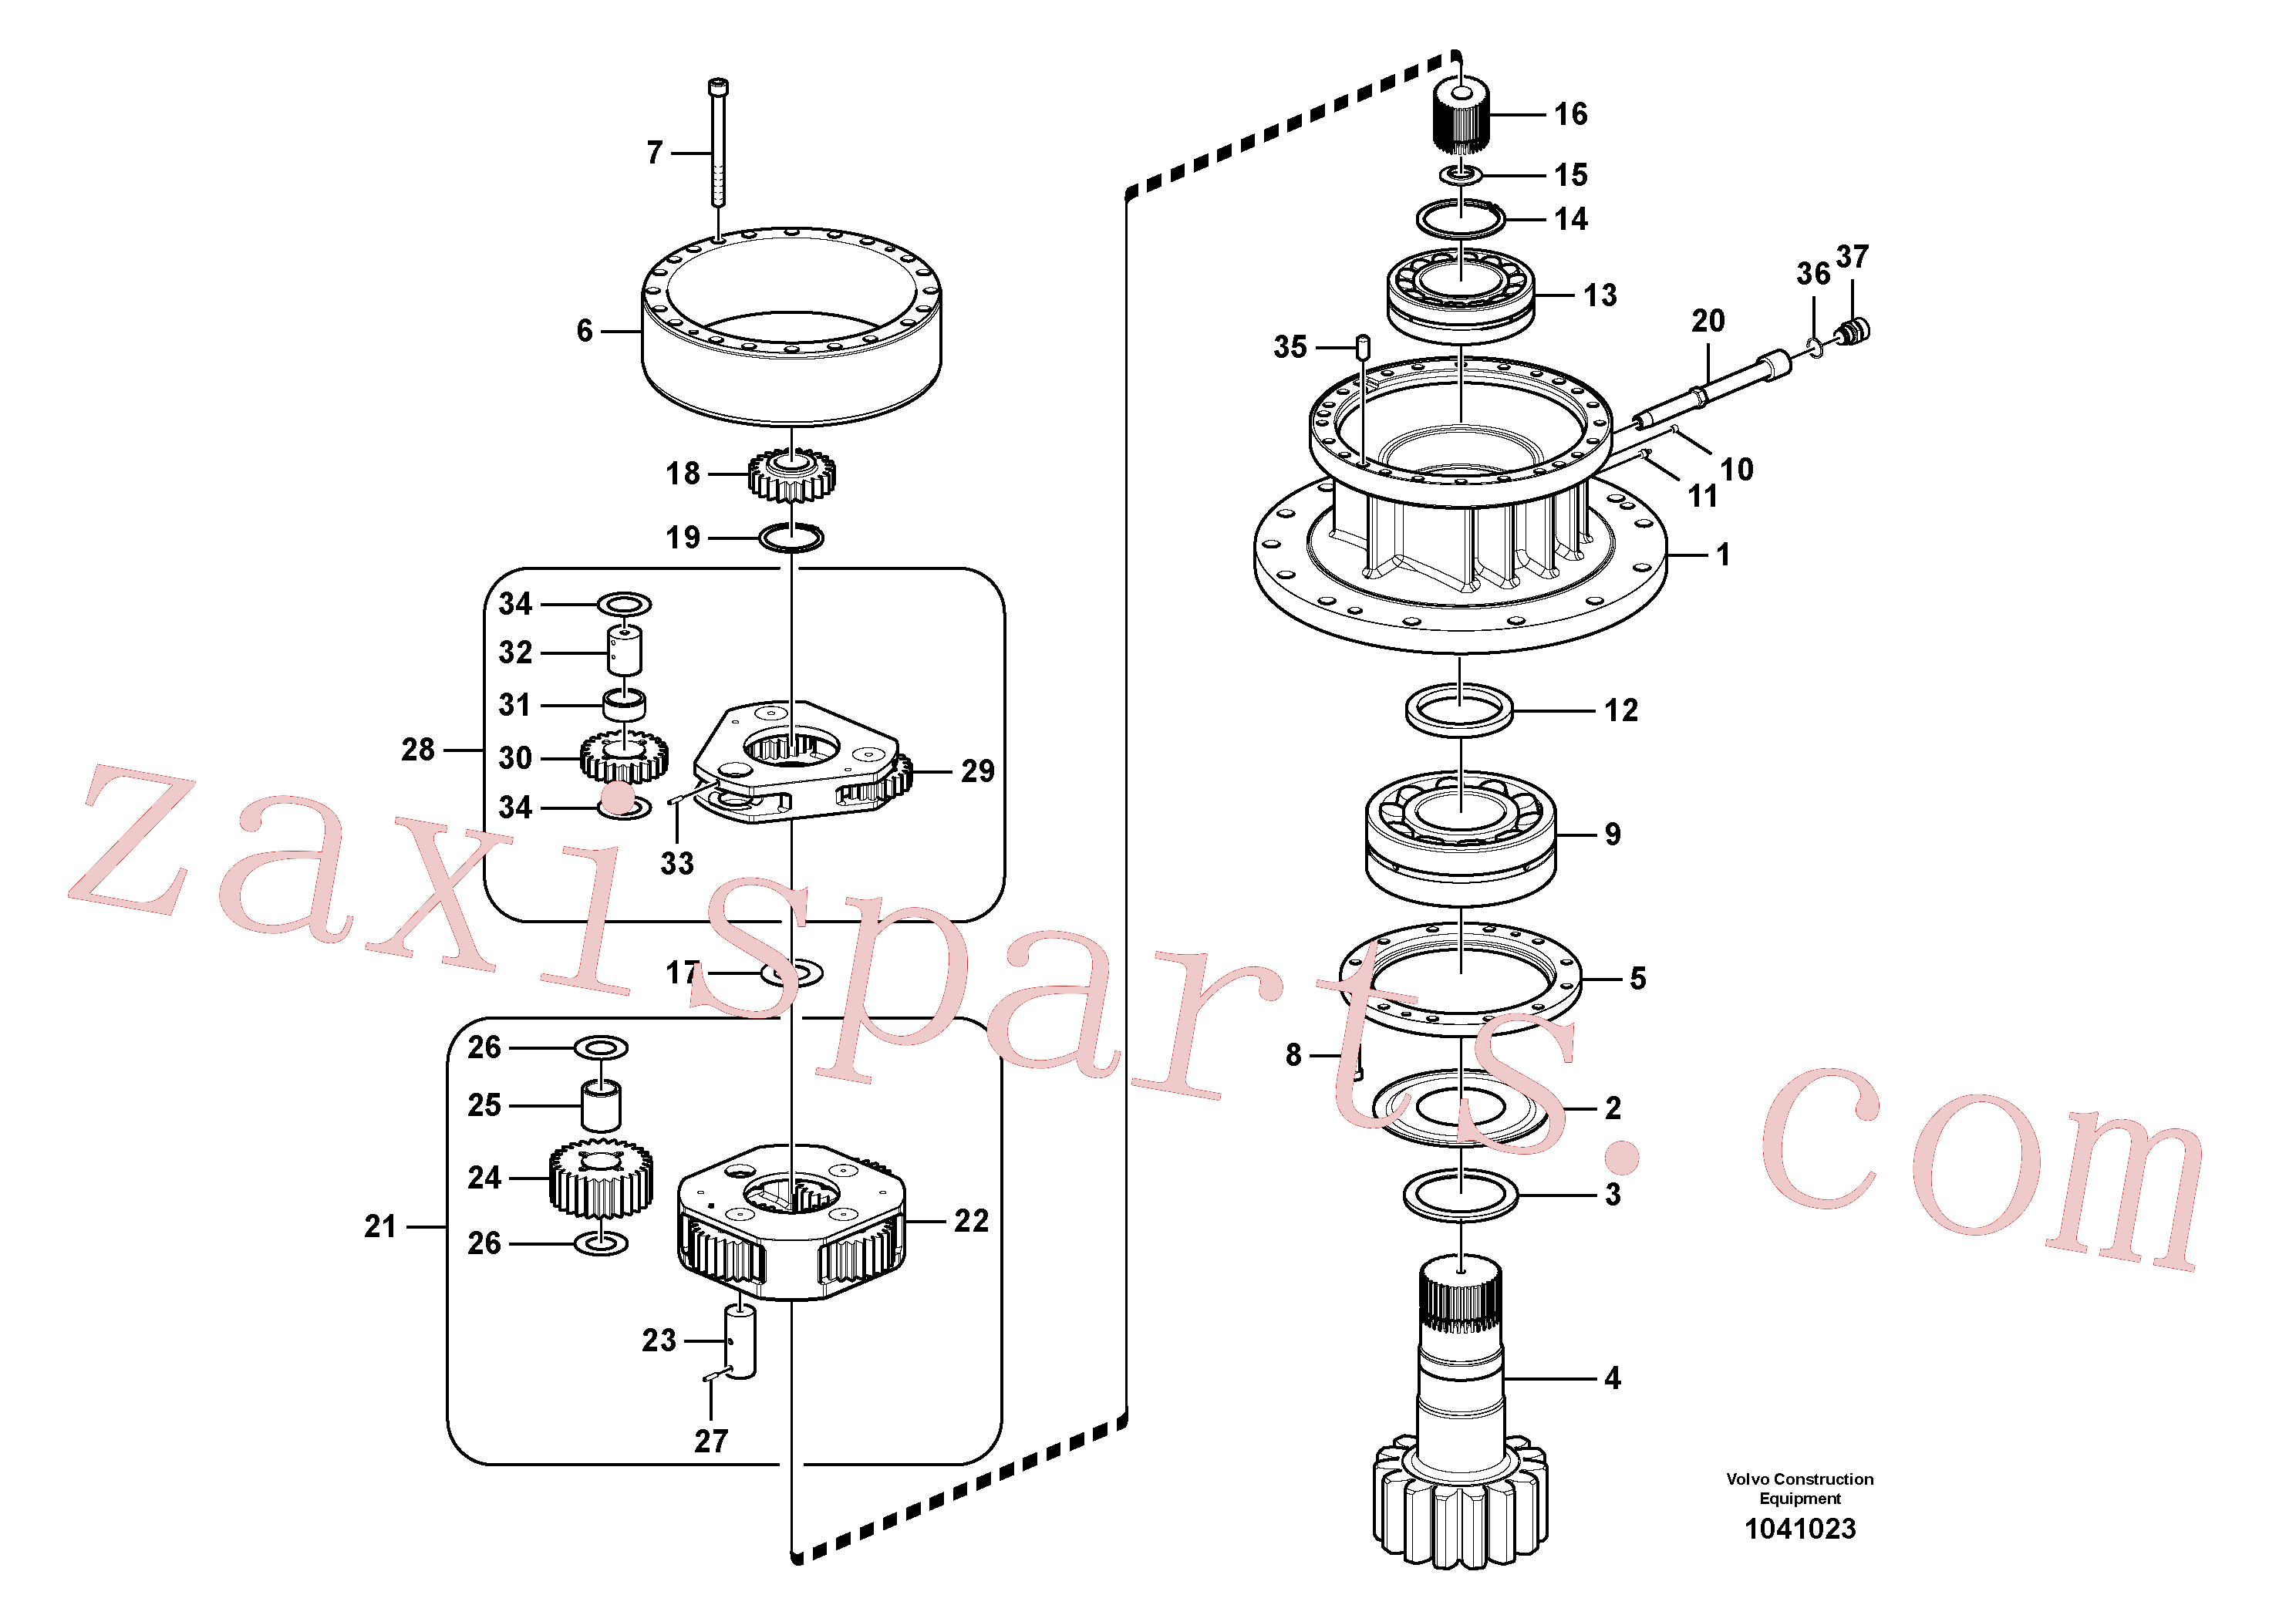 VOE14547277 for Volvo Swing gearbox(1041023 assembly)